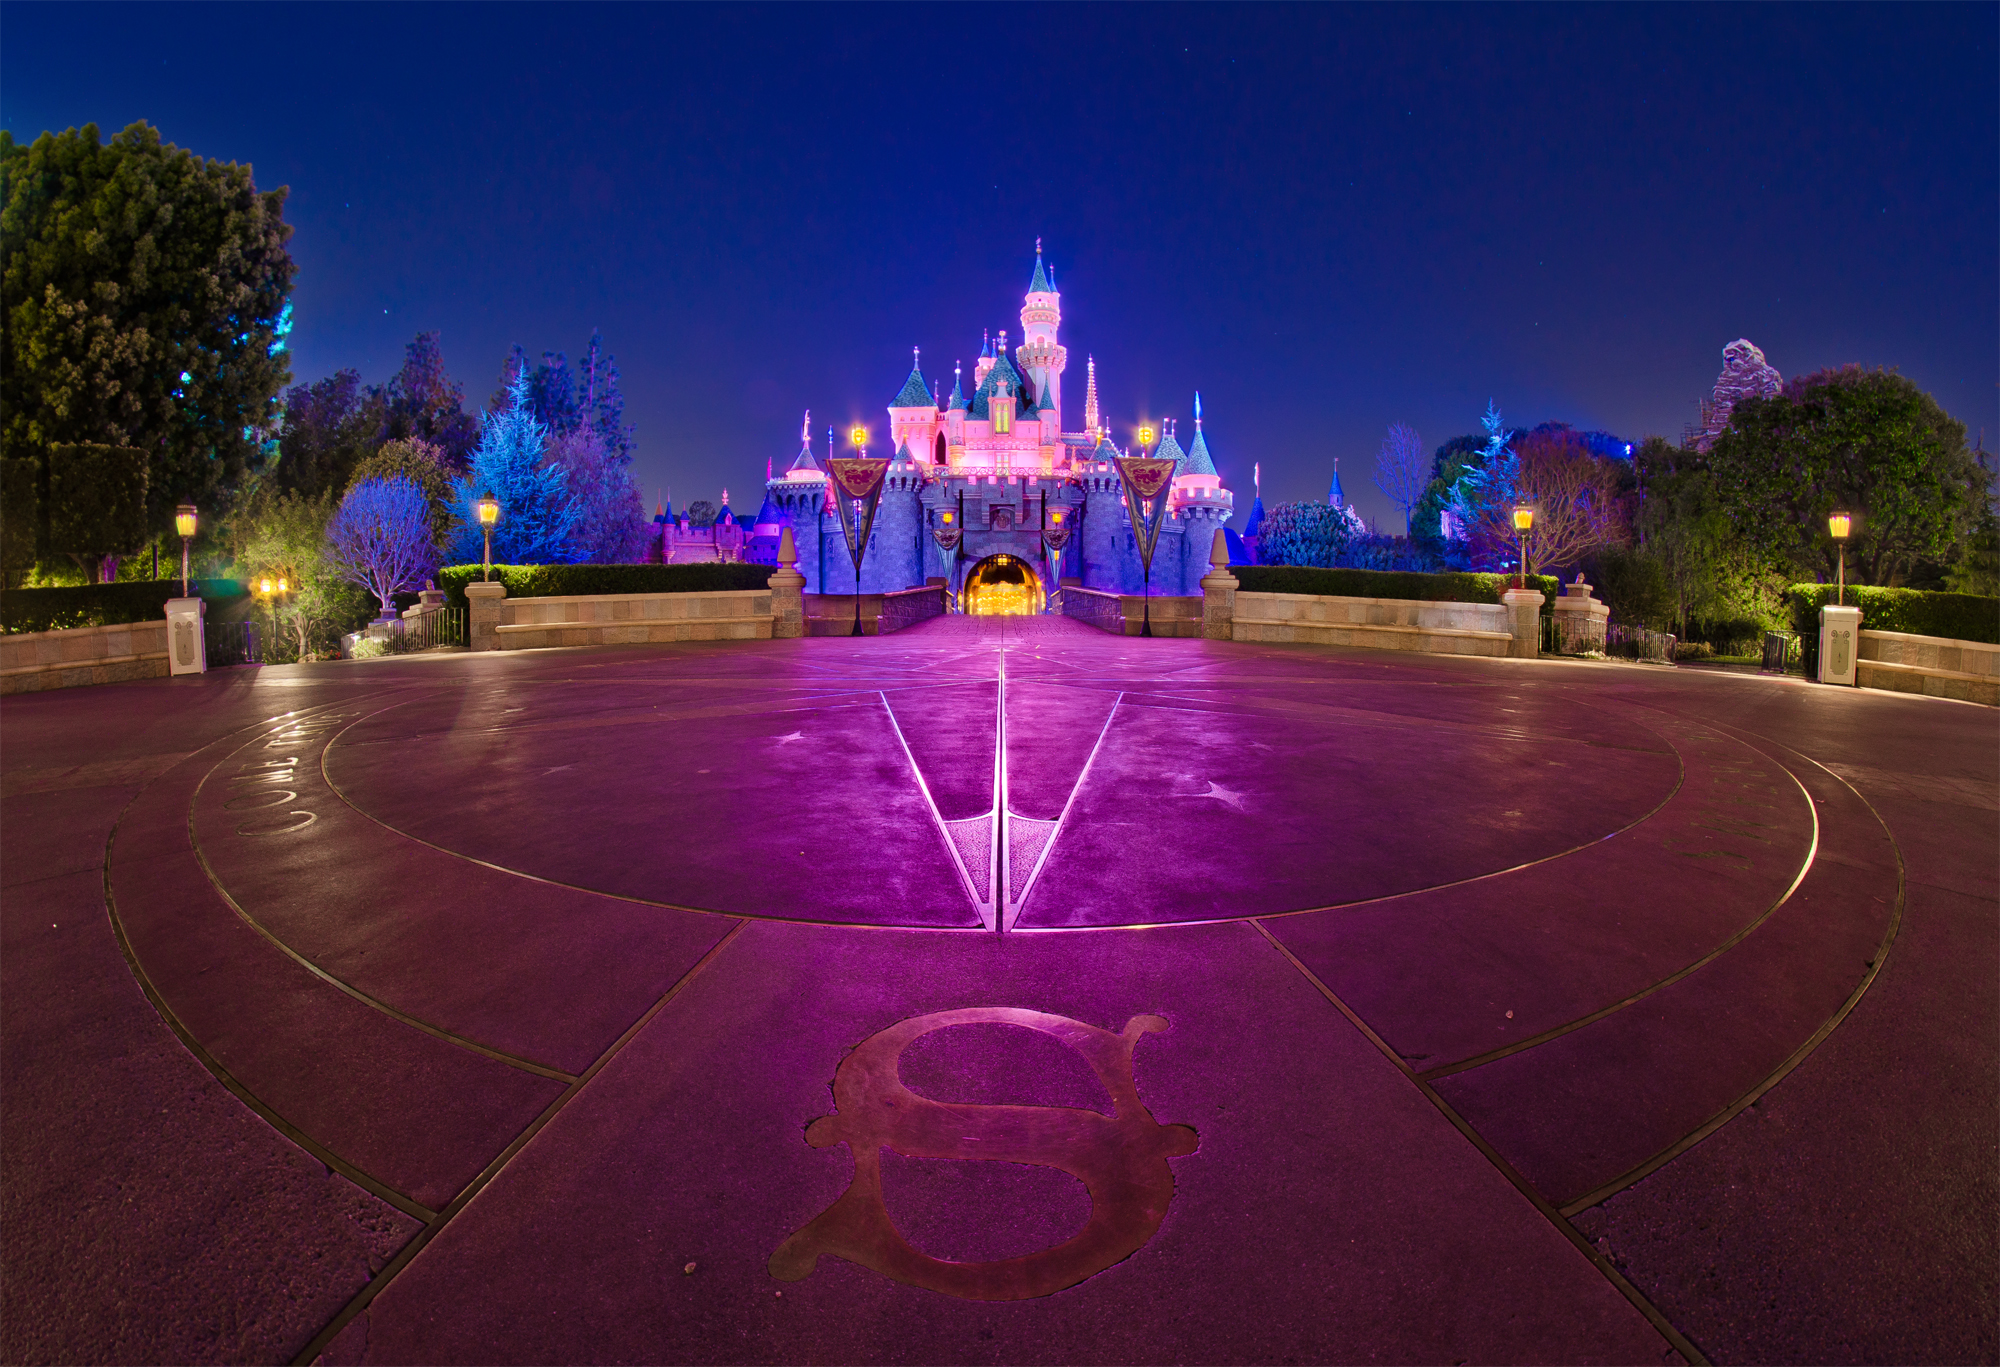 Sleeping Beauty Castle night photo